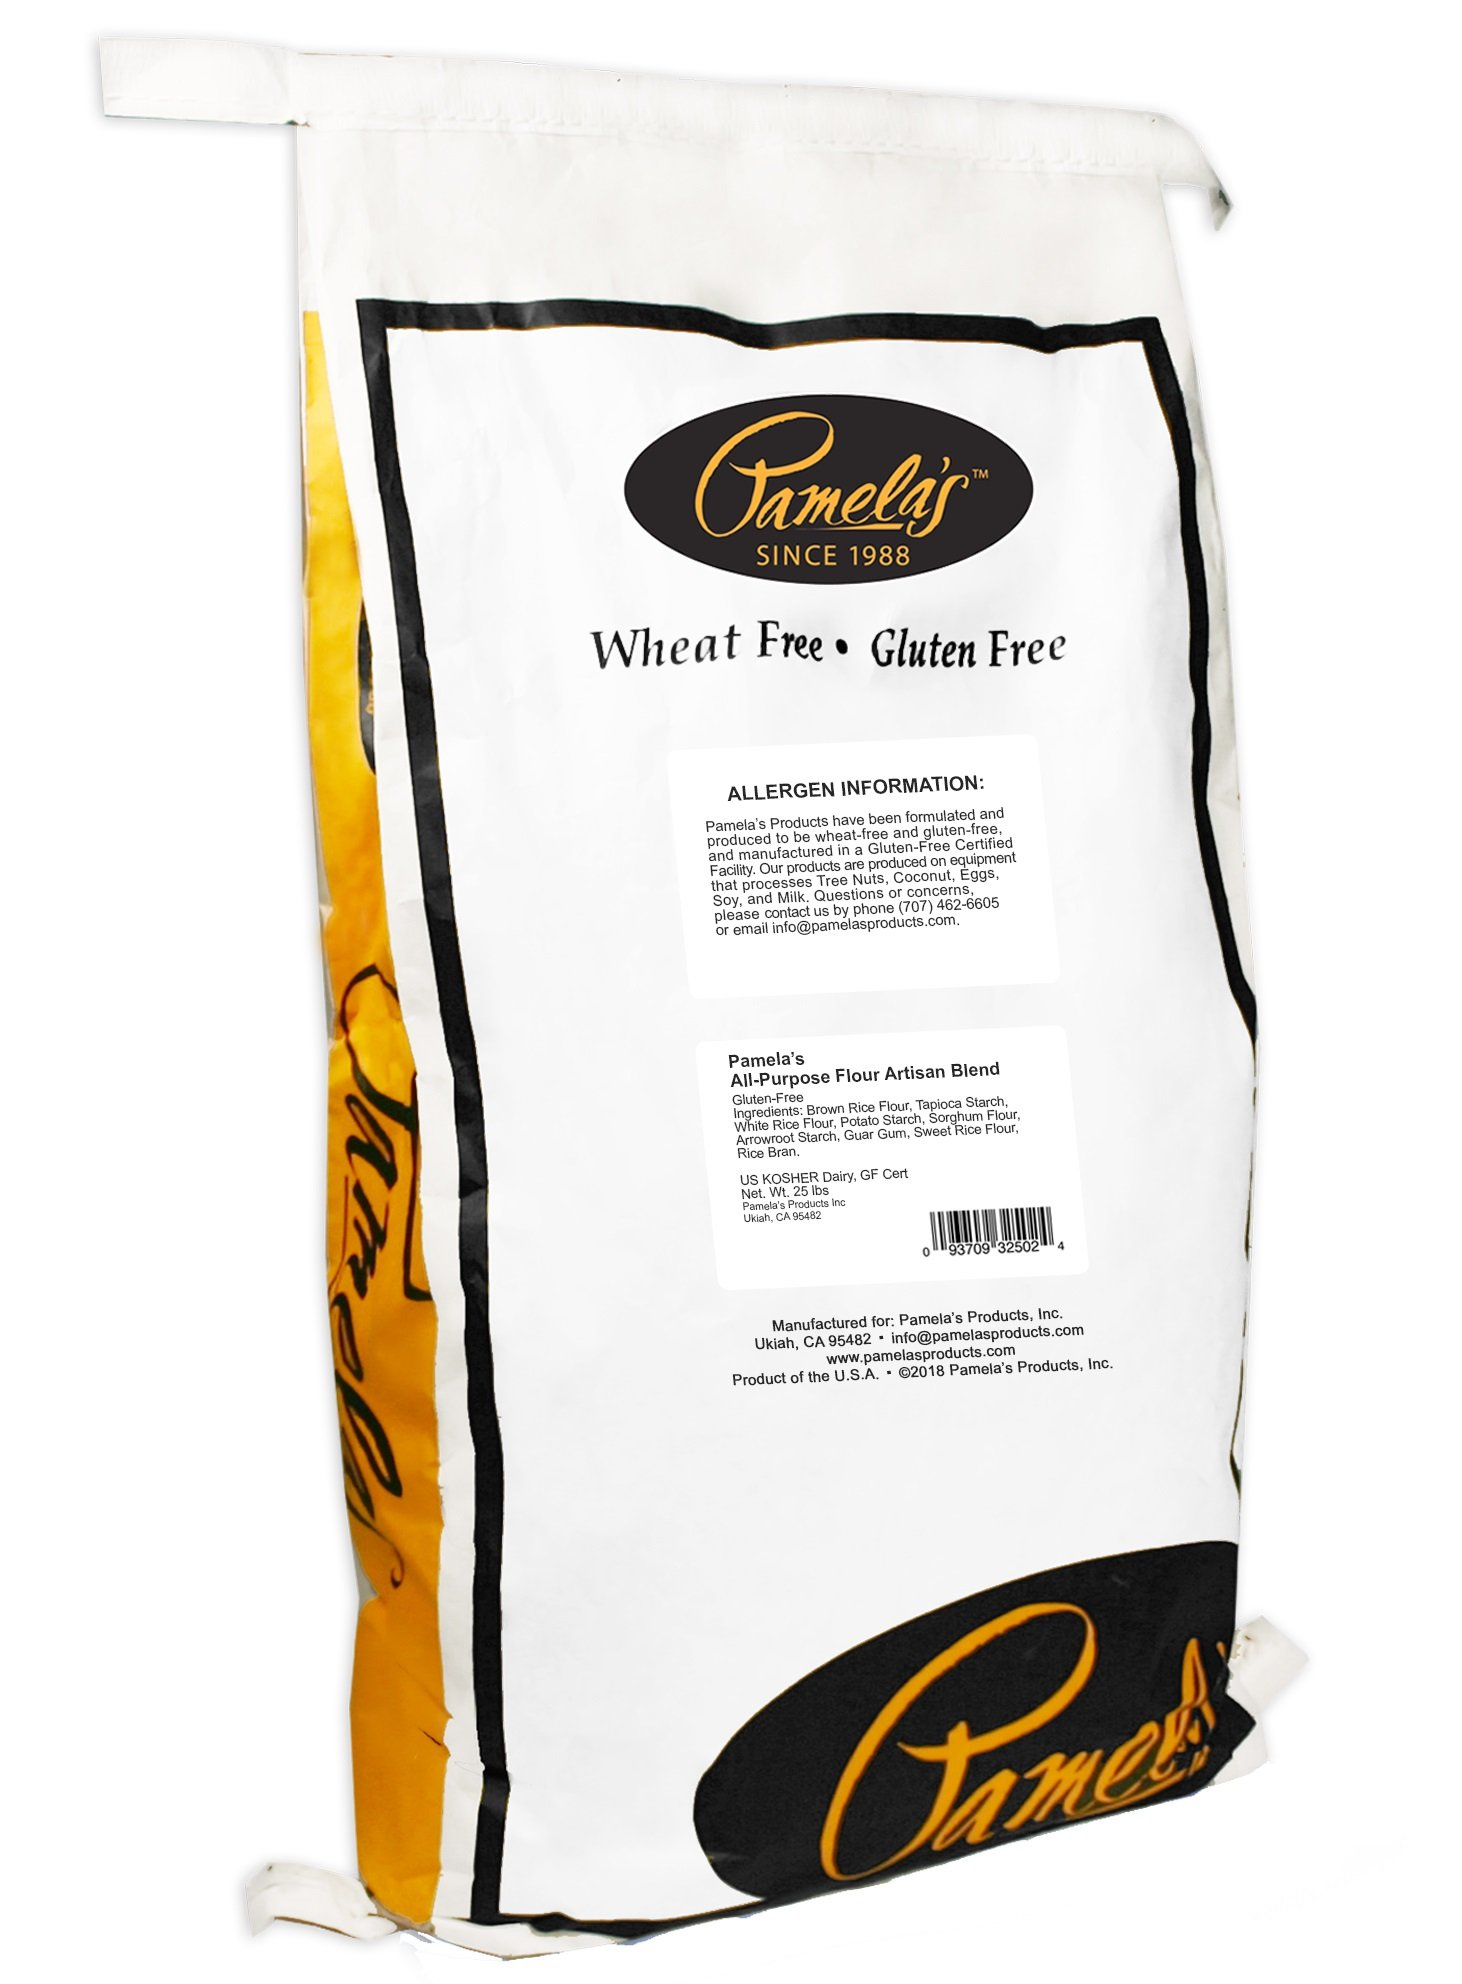 Pamela's Products Gluten Free All Purpose Flour Blend, 25 Pound by Pamela's Products (Image #1)